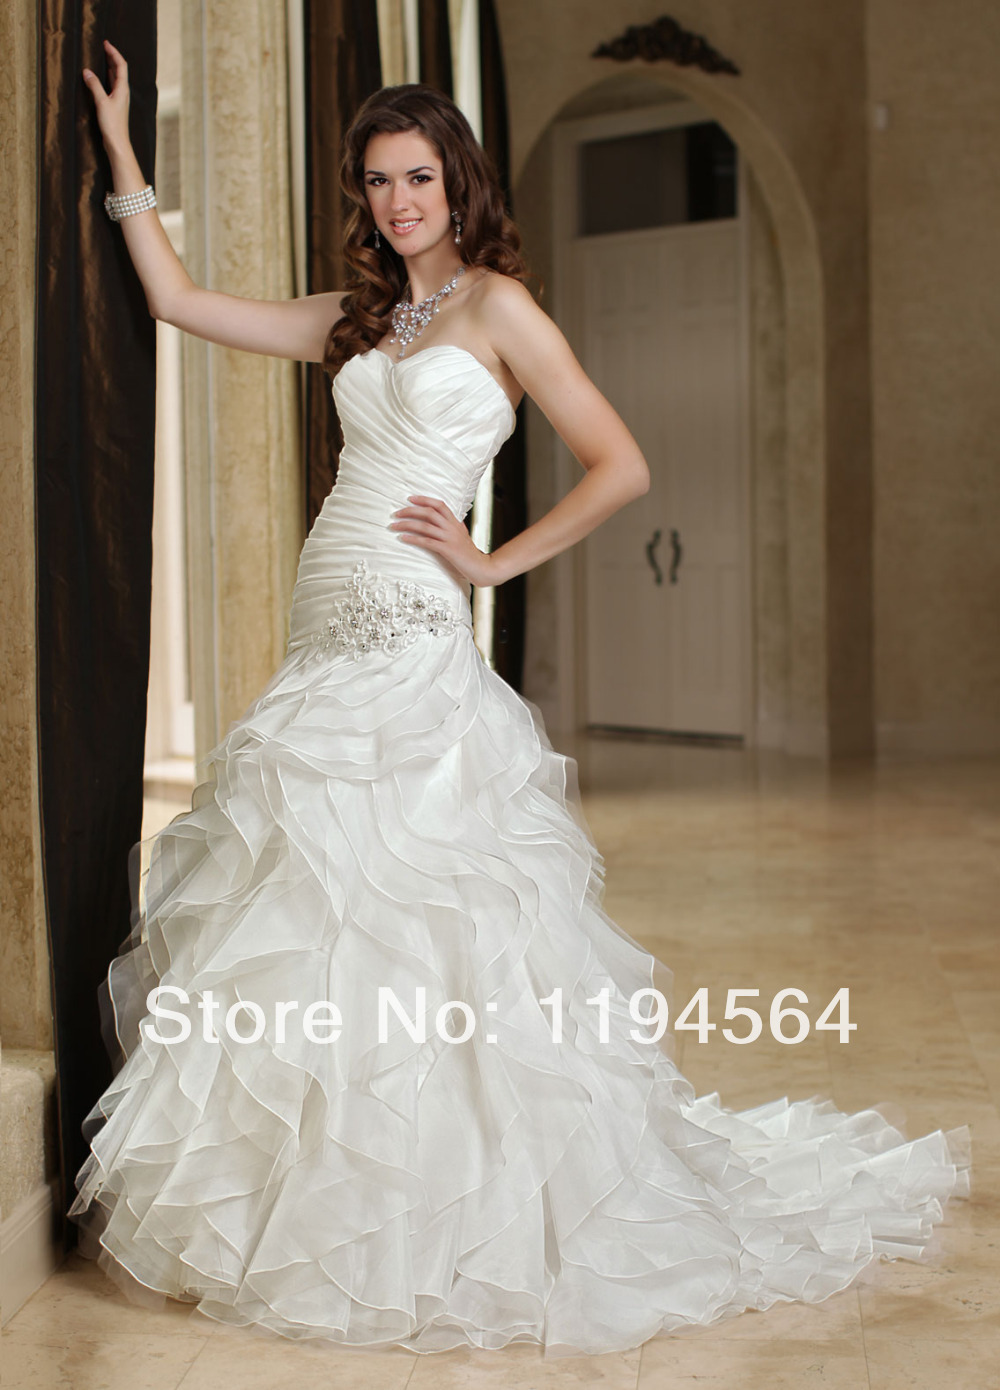 New Fashion 2014 White Organza A Line Sweetheart Bridal Gown Ruffles and Appliques Wedding Dress Patterns Free Shipping WH1328(China (Mainland))